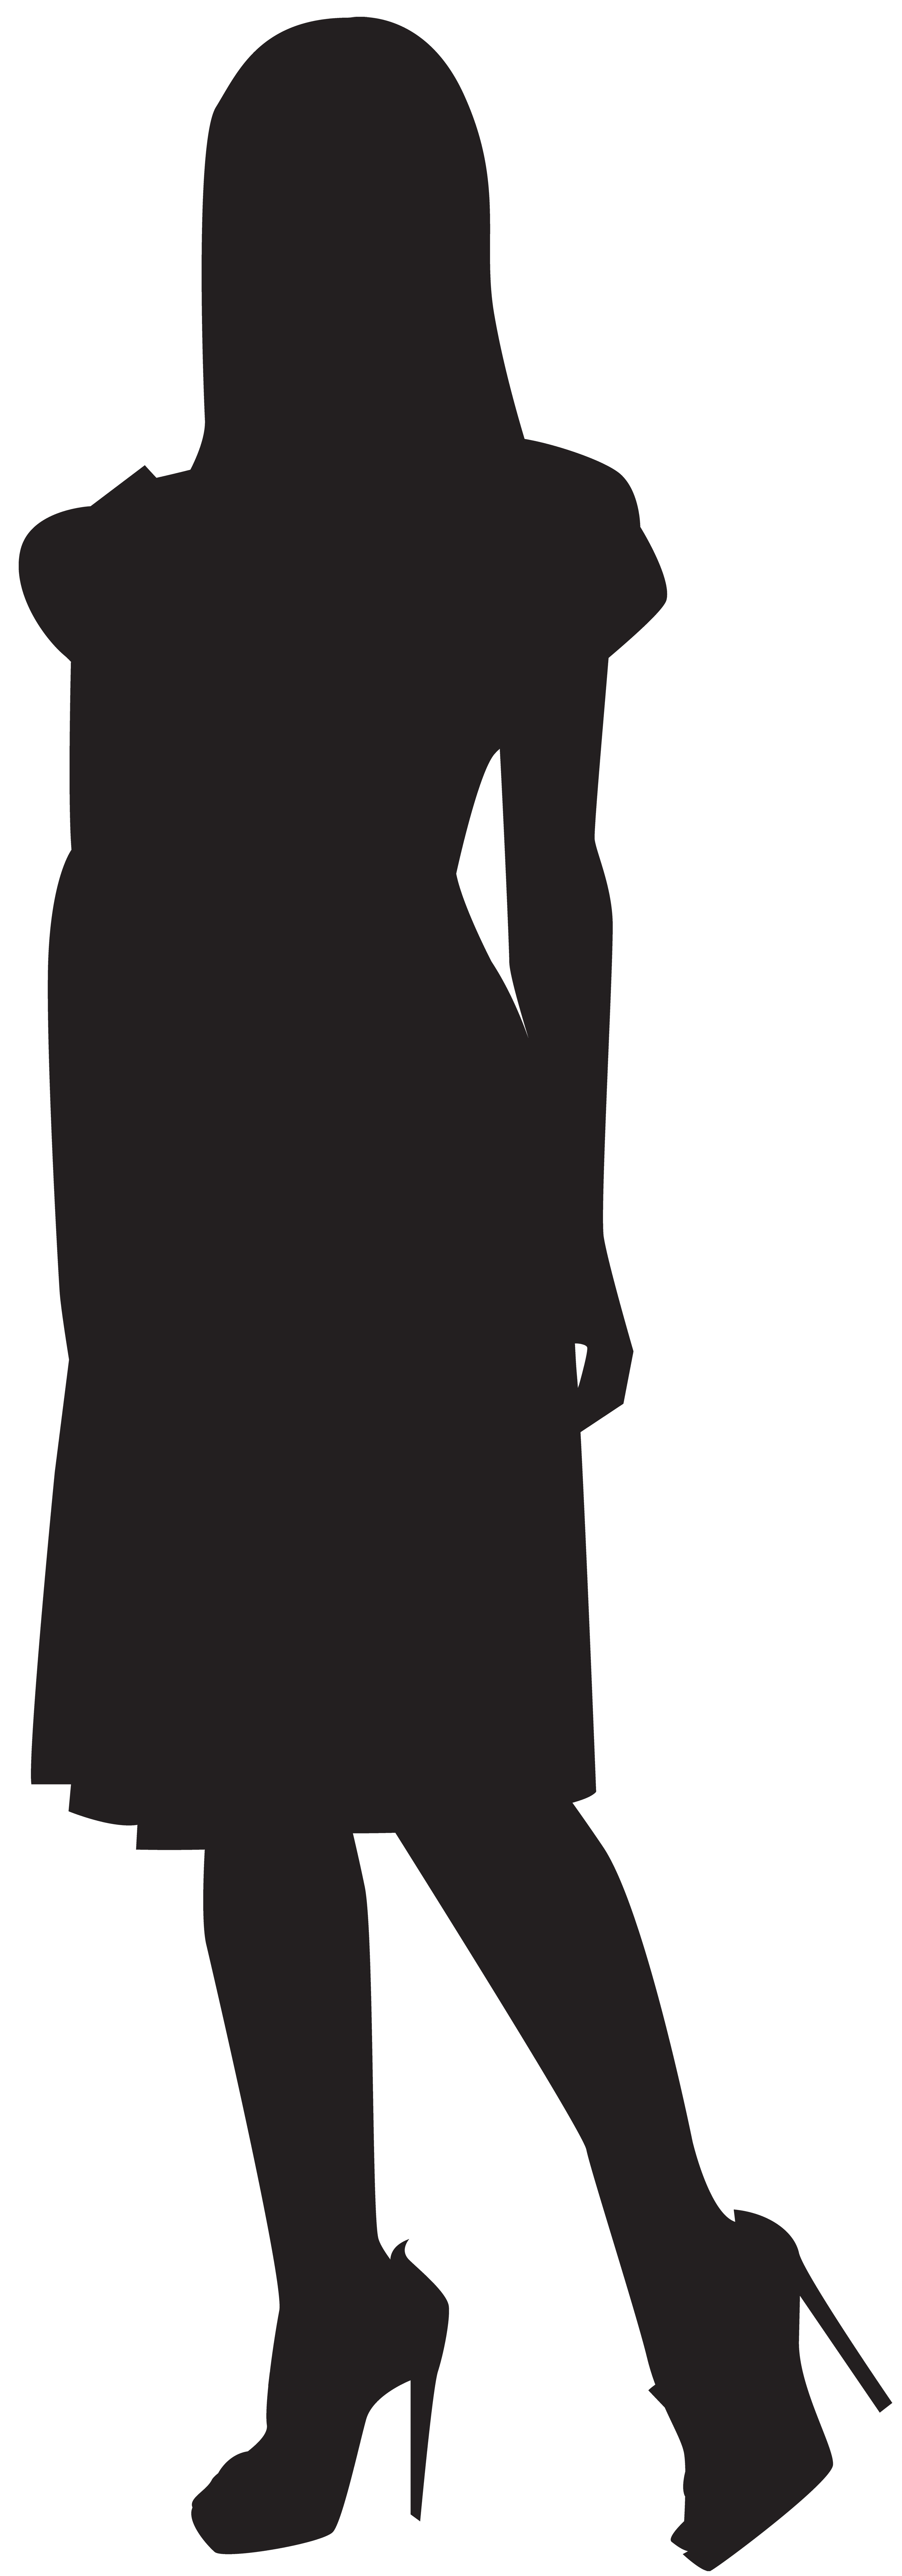 Woman Silhouette Clipart Png.